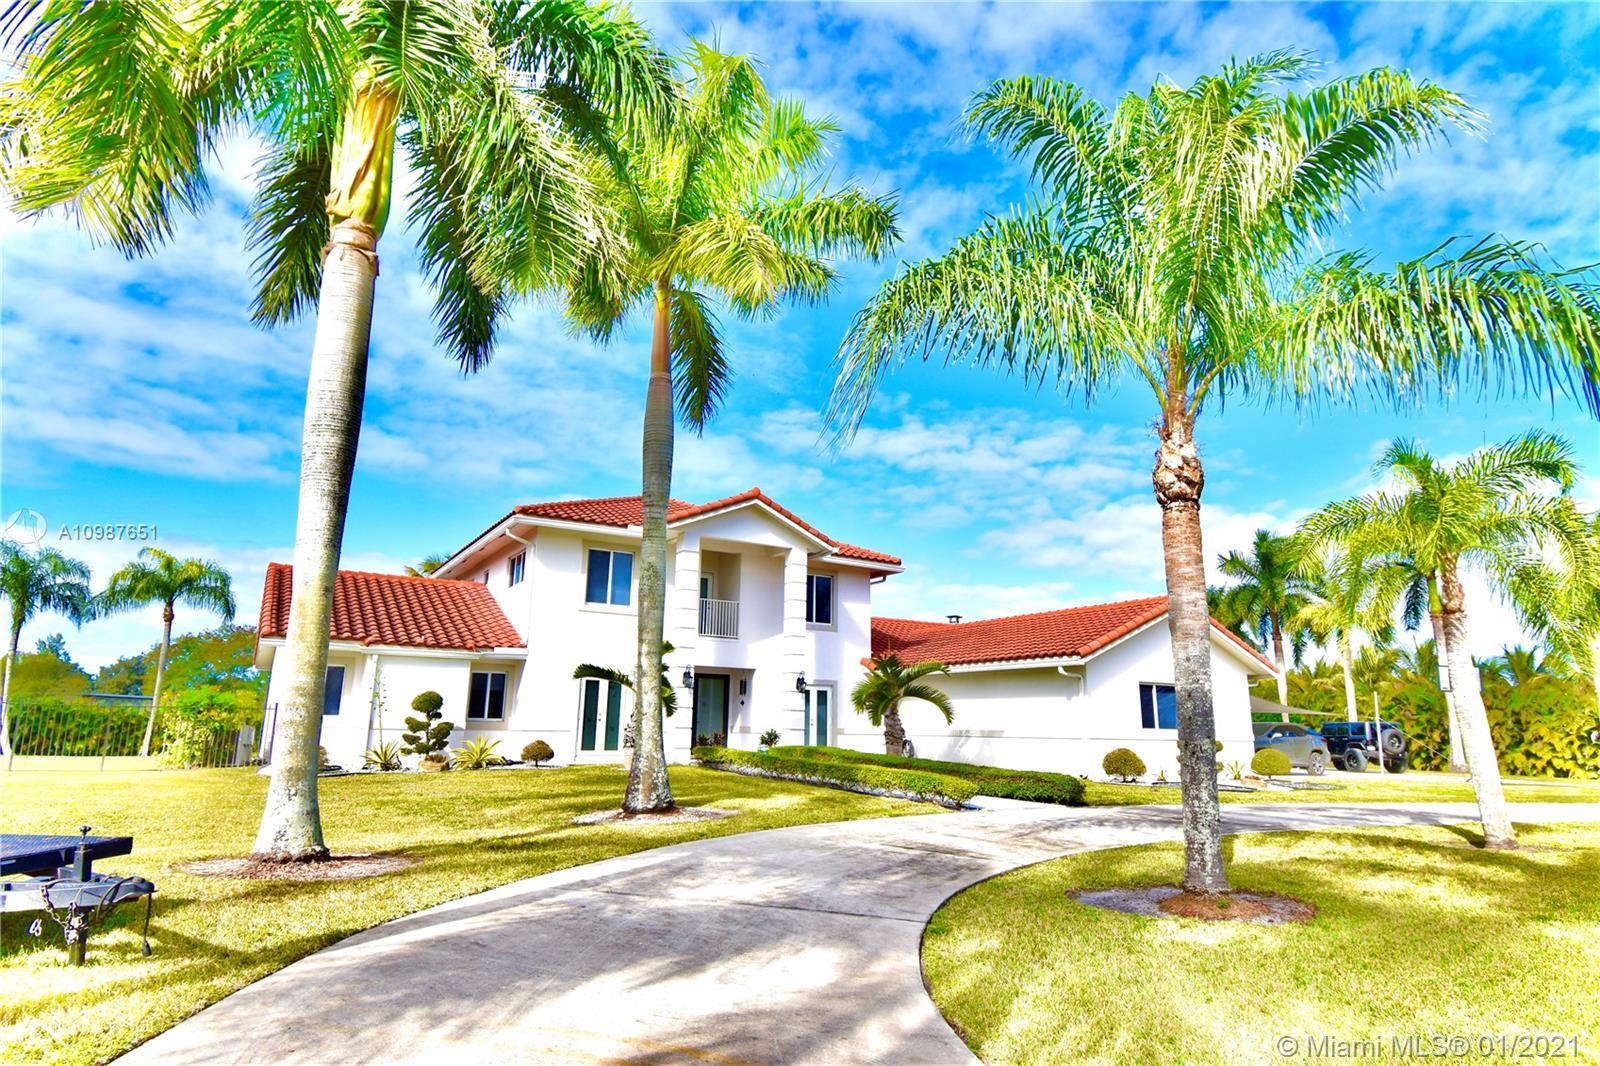 South Florida Finest Estate -Private Entrance W/Fully Updated W/New Roof W/ 5 Bedroom 4 1/2 Bath (2